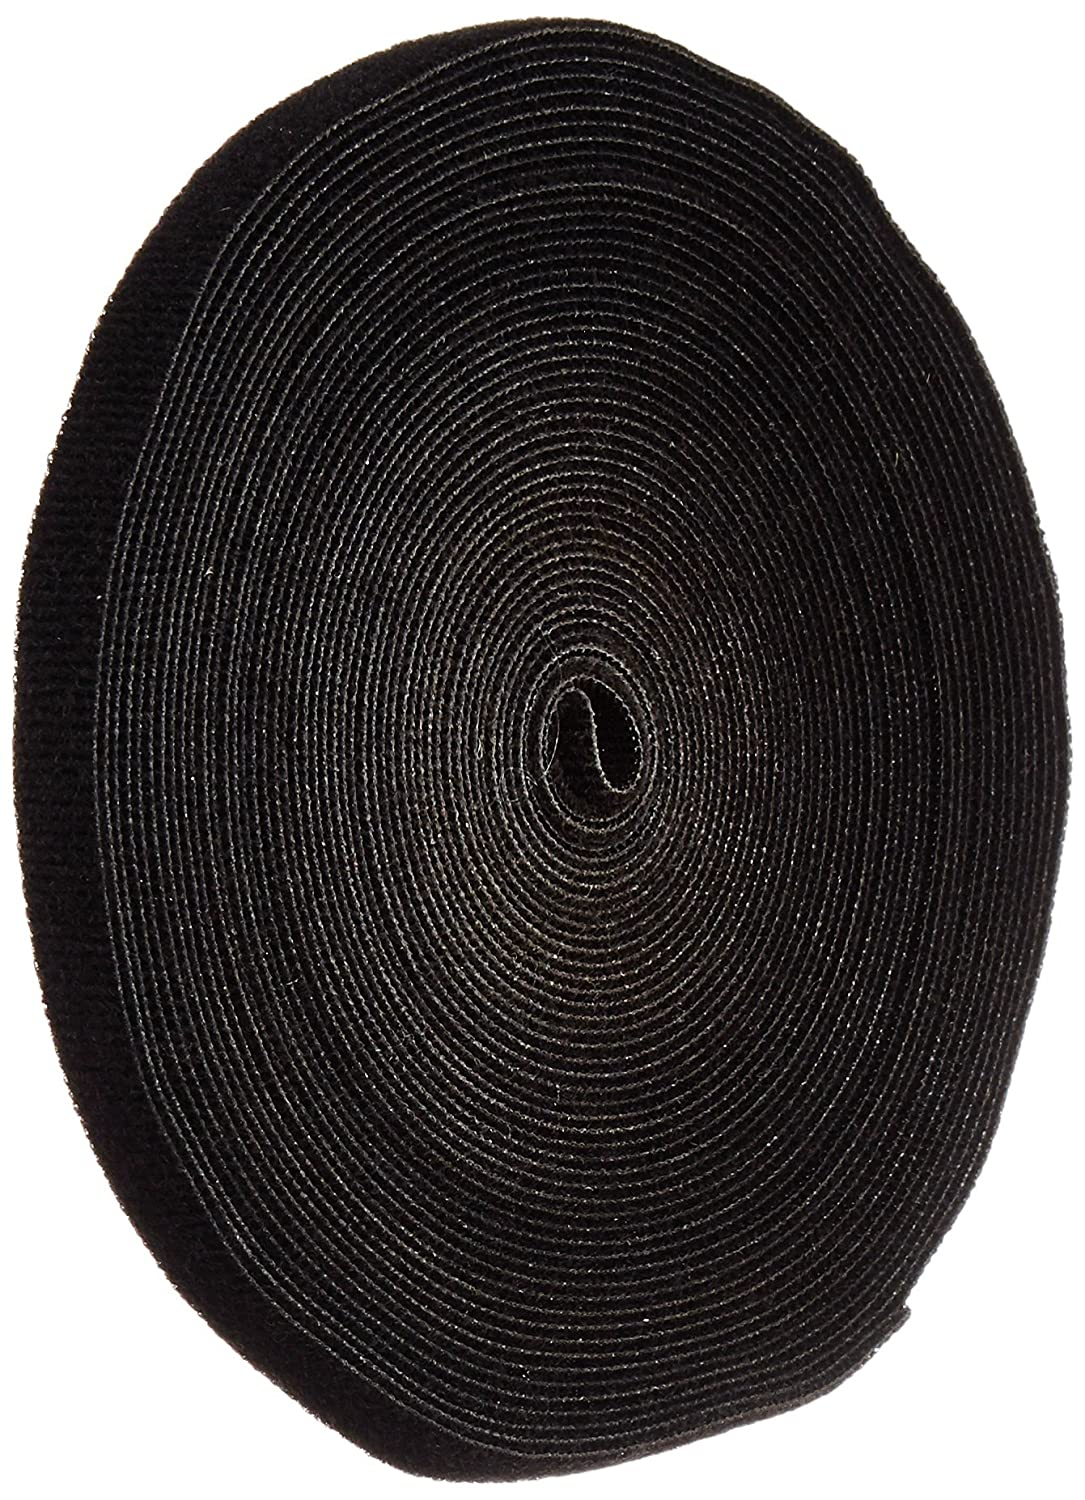 VELCRO 1801-OW-PB/B Black Nylon Onewrap Velcro Strap, Hook and Loop, 1/2' Wide, 50' Length 1/2 Wide 50' Length CS Hyde Company Inc 1801-OW-PB/B-50